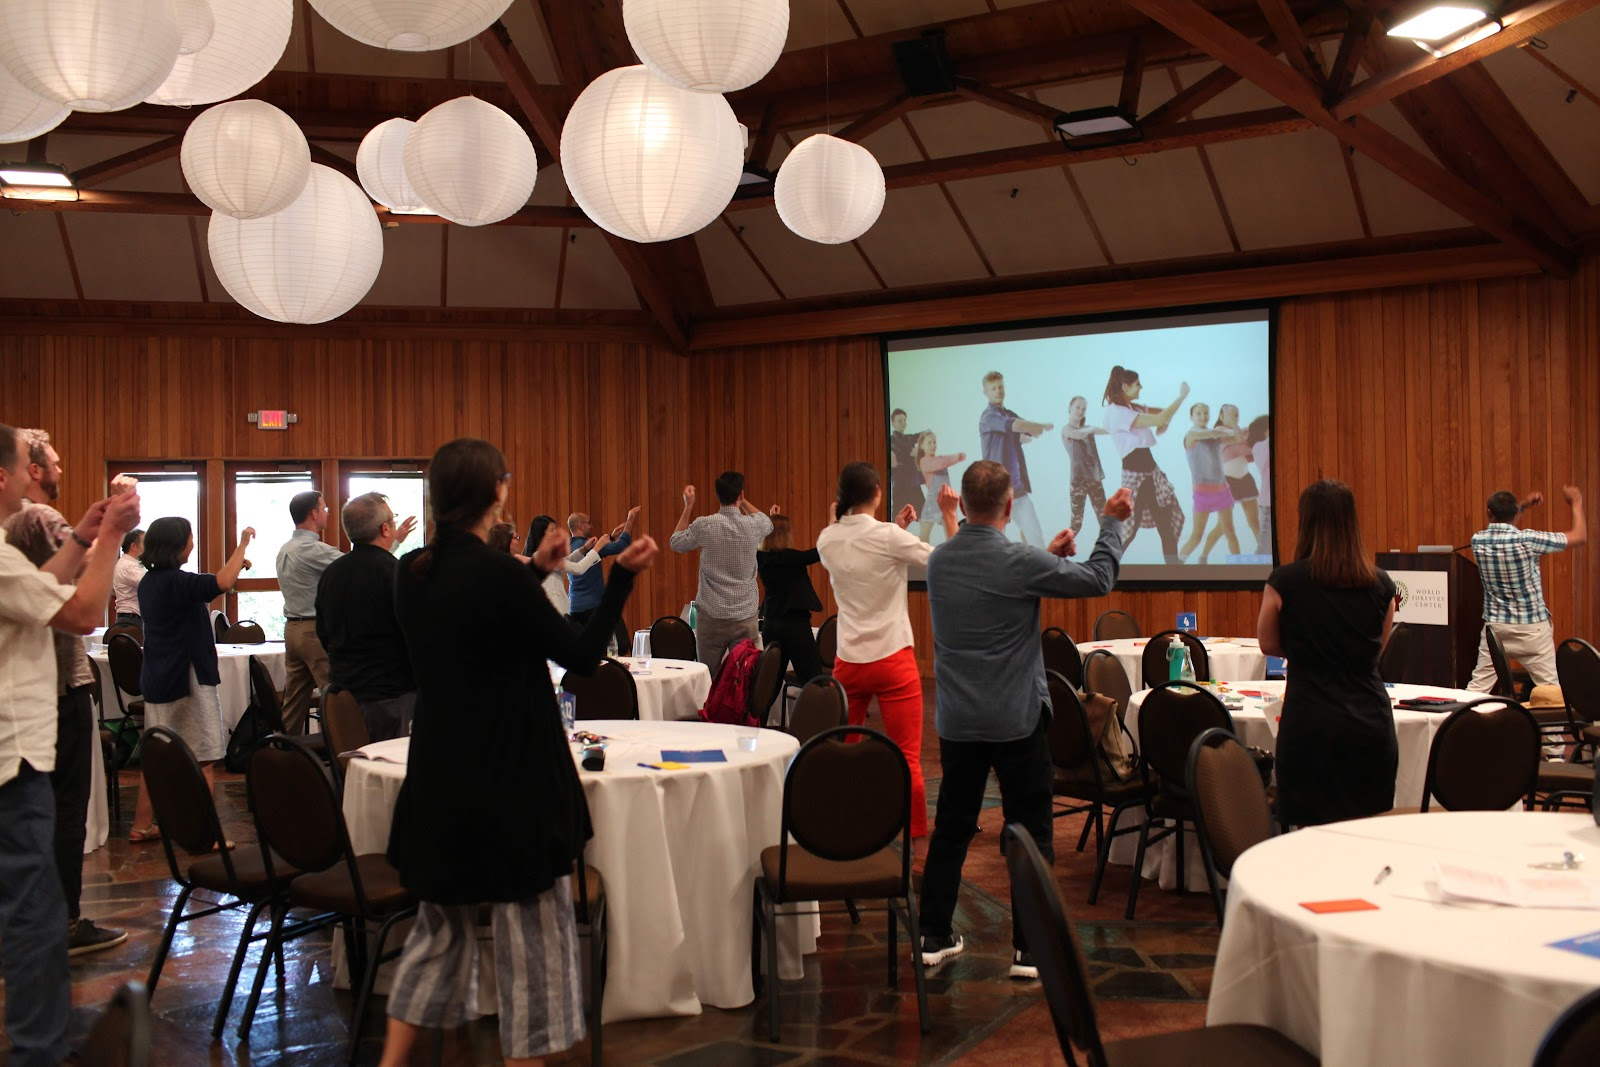 ILN participants dancing to disco music in the middle of the conference as a mid-day exercise.